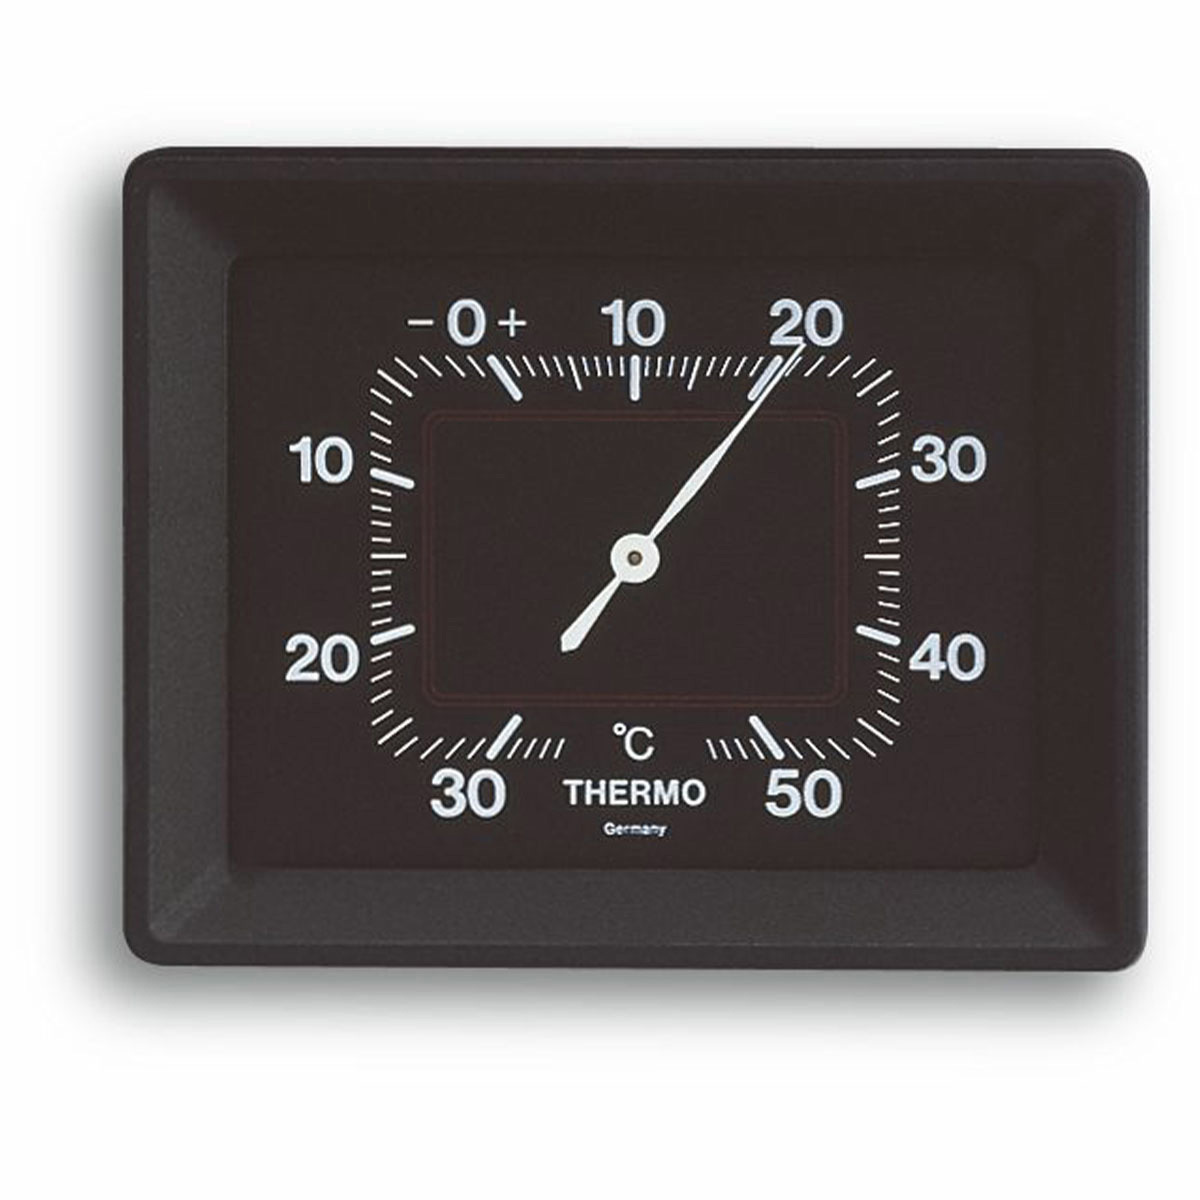 19-2004-analoges-thermometer-1200x1200px.jpg